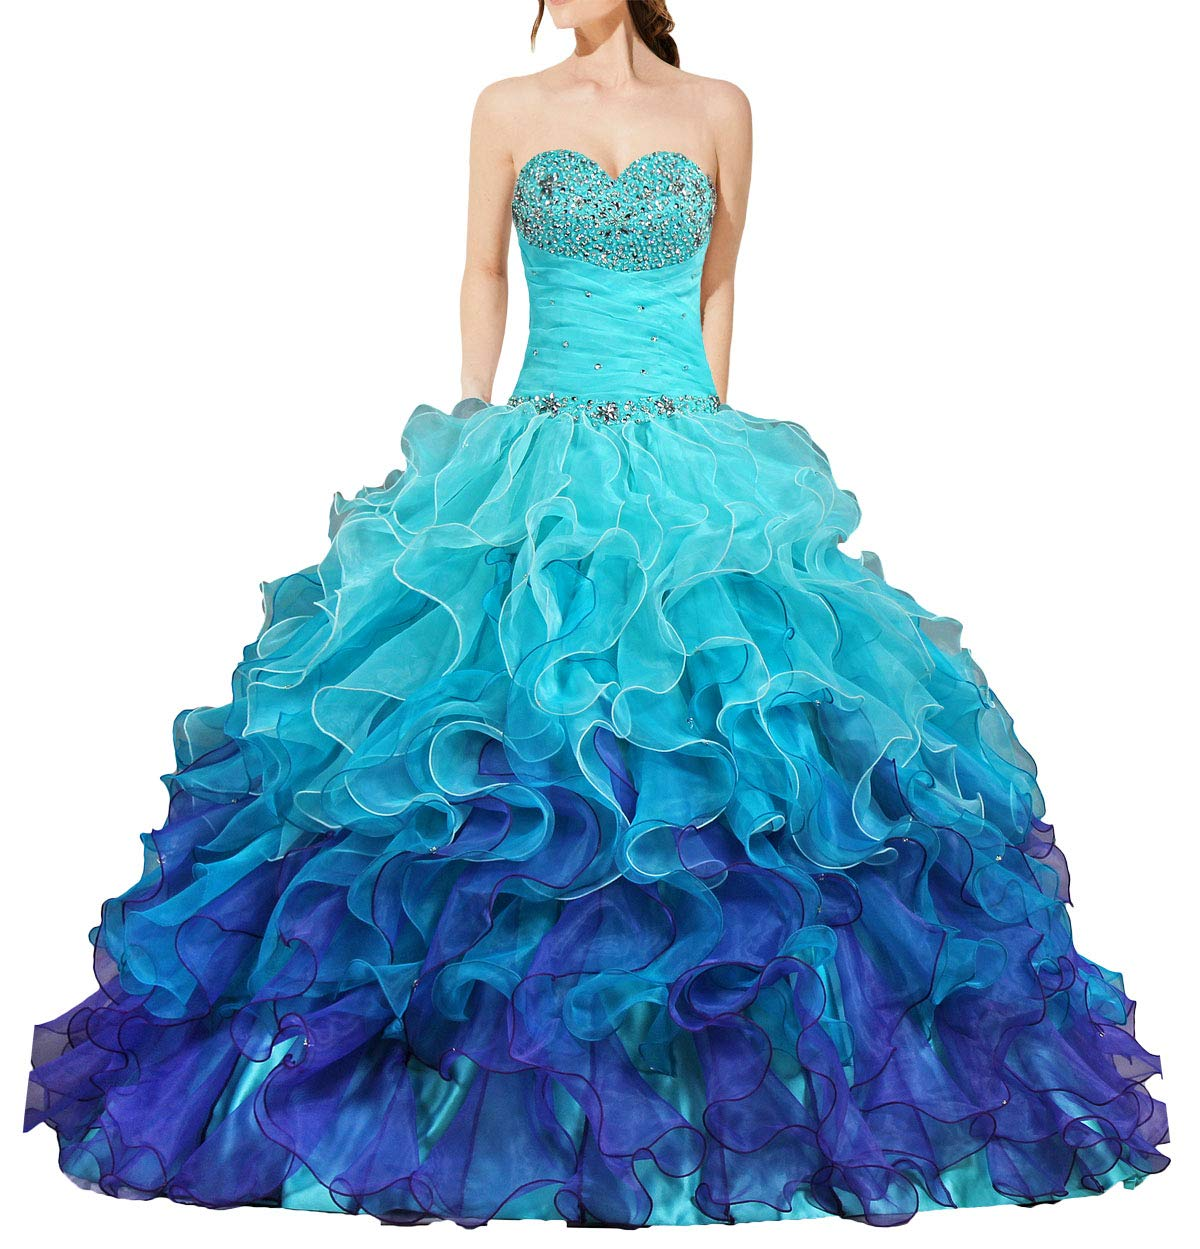 Available at Amazon: ANTS Women's Gorgeous Strapless Rainbow Quinceanera Dresses Ruffle Prom Gowns